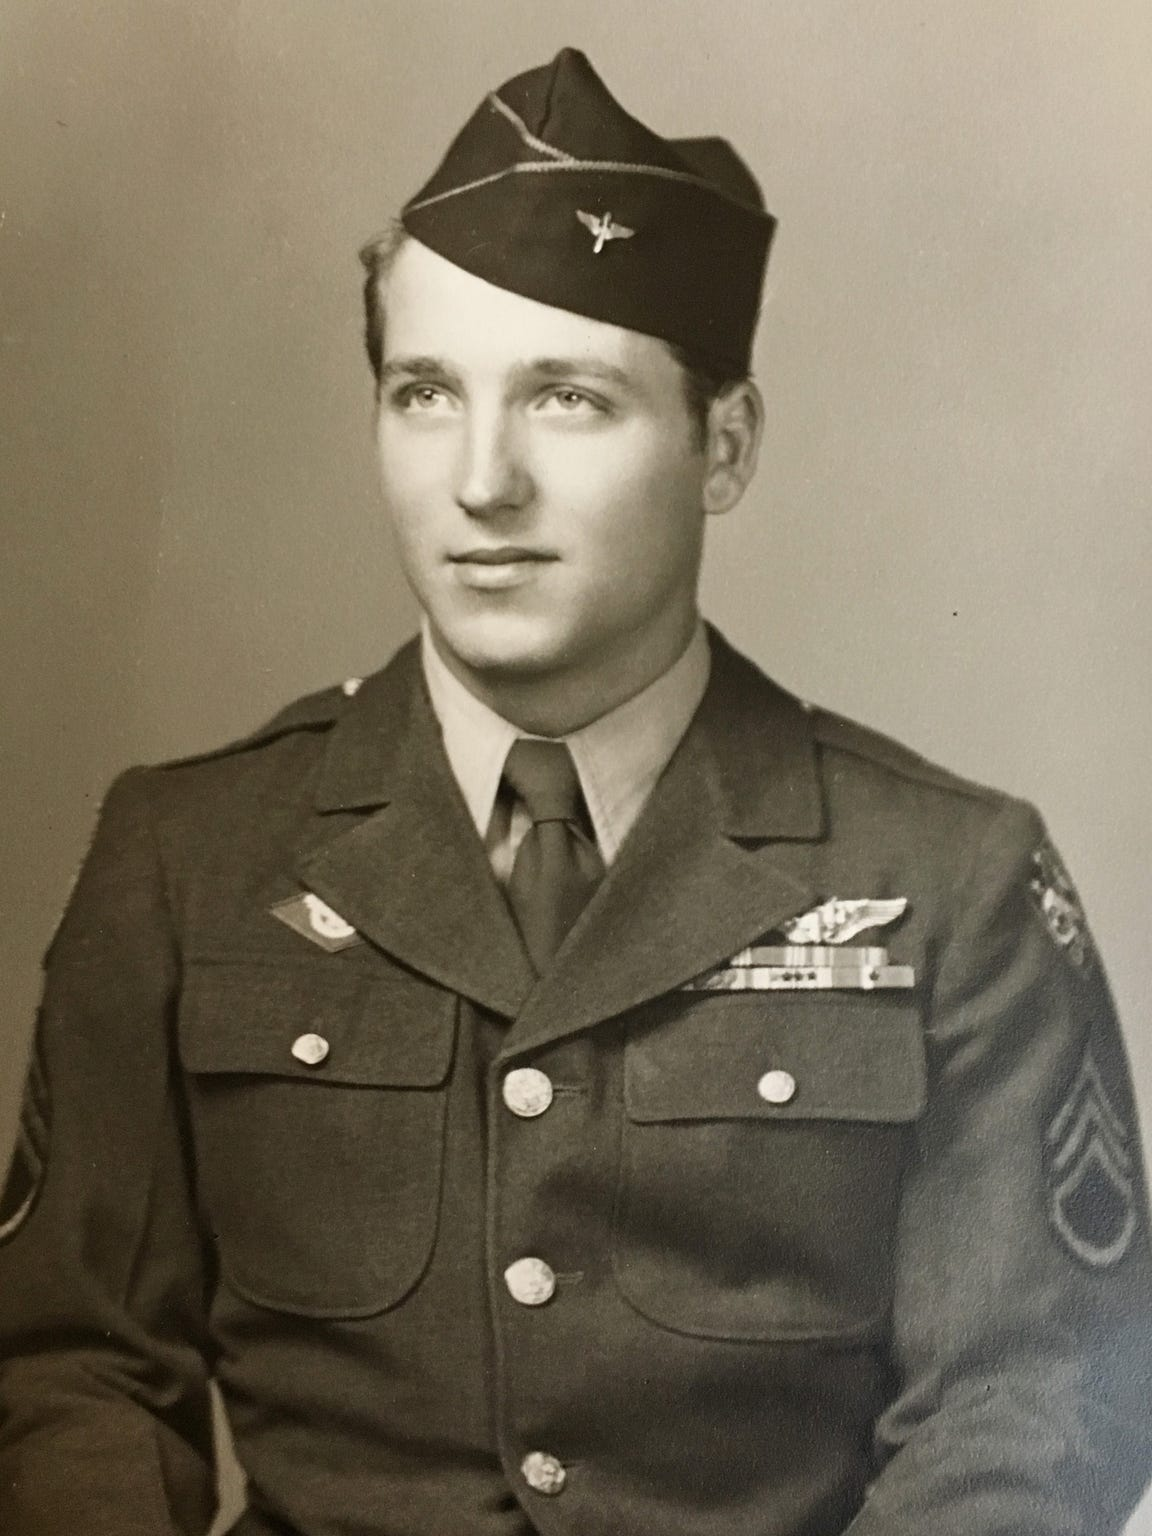 Leo Bundschuh (Oct. 30, 1925 – ) enlisted into WWII,